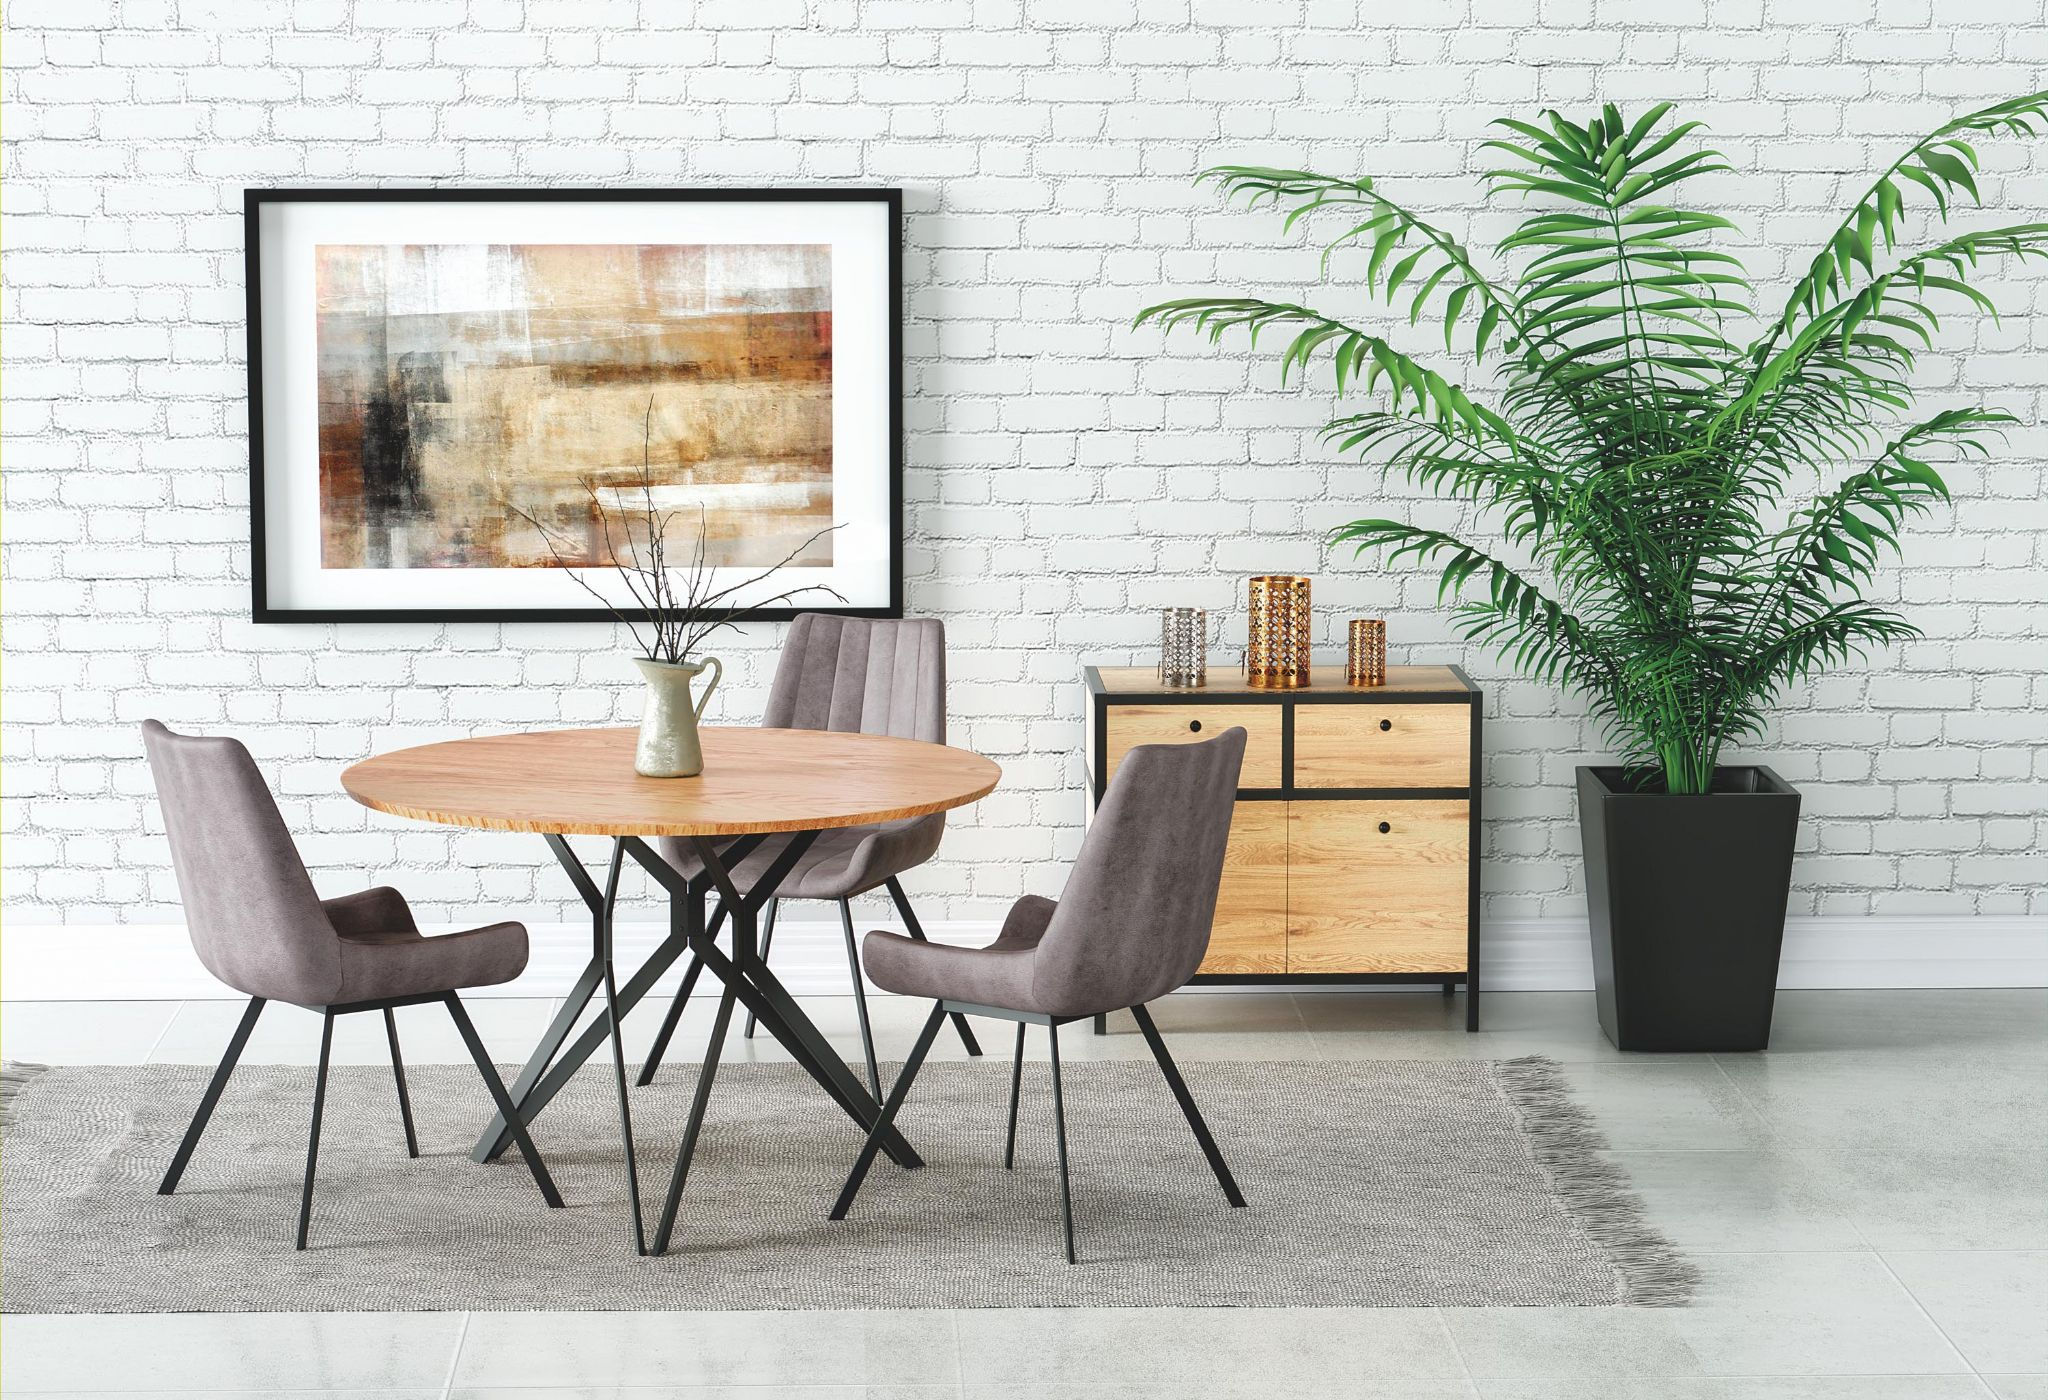 Tremendous Precia Round Oak Dining Table 120Cm Complete Home Design Collection Lindsey Bellcom